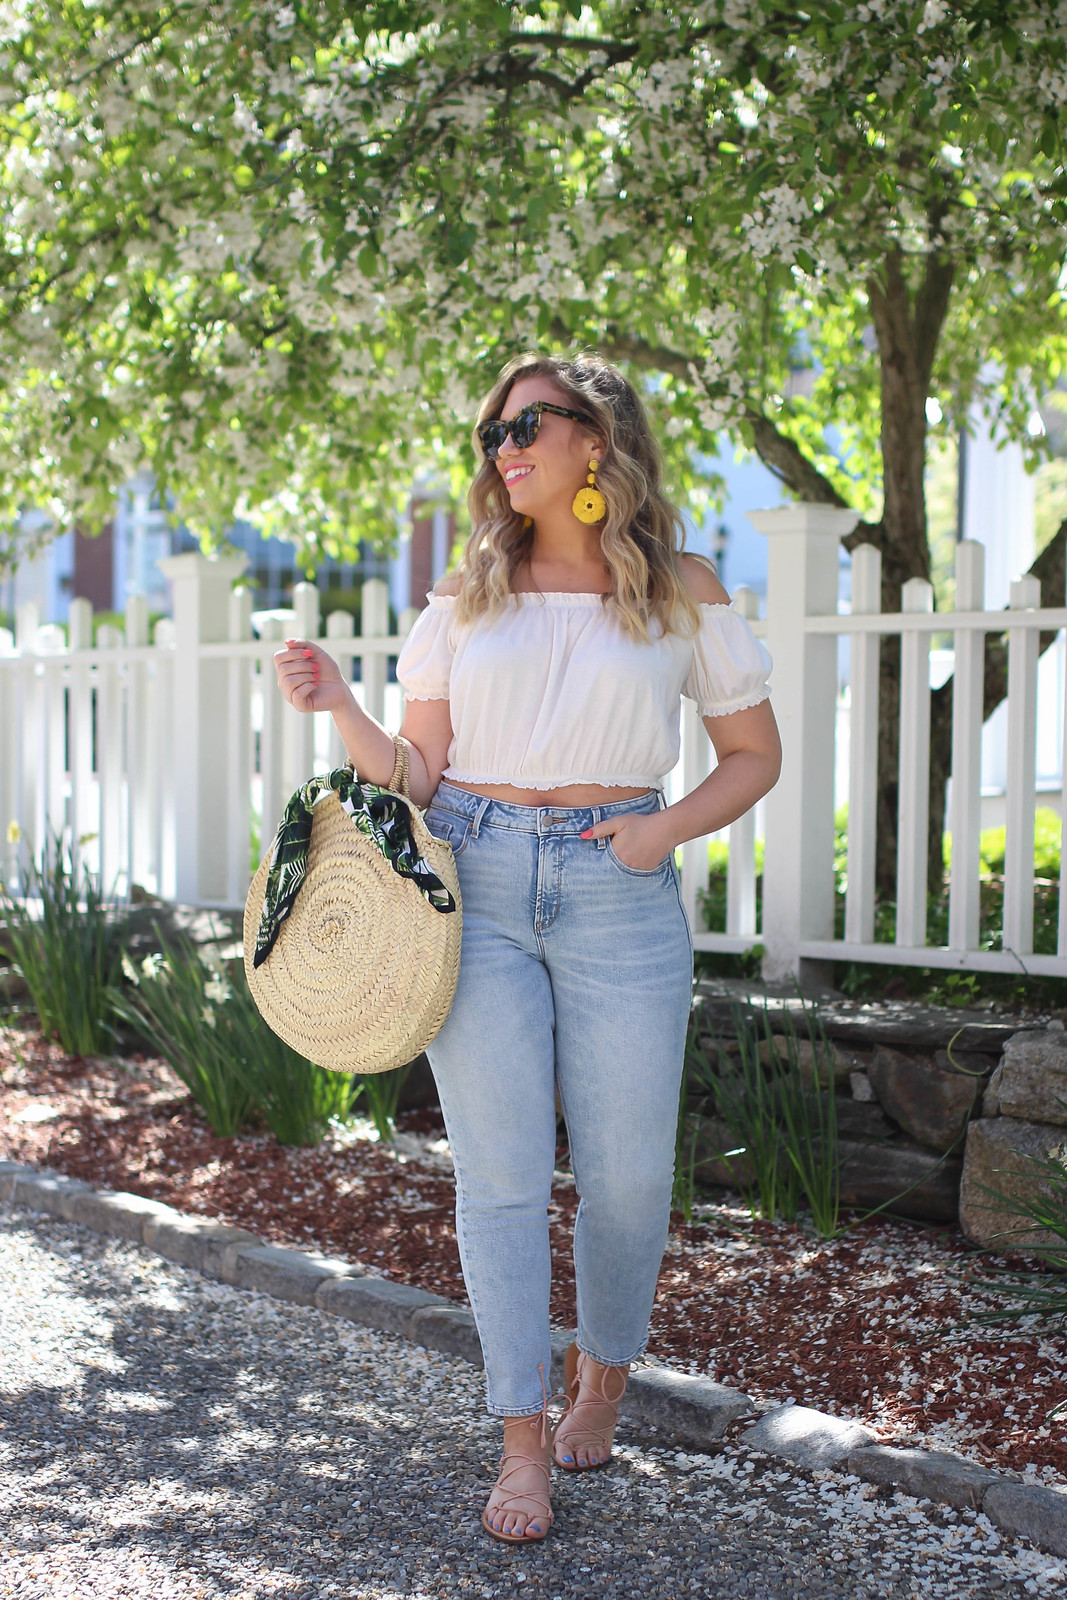 The Only Top You Need to Buy this Summer | Summer Wardrobe Staple | Summer Capsule Wardrobe | Summer Casual Outfit Inspiration| H&M Off the Shoulder White Crop Top | Old Navy High Rise Ankle Straight Jeans | Bedford New York Westchester Blogger